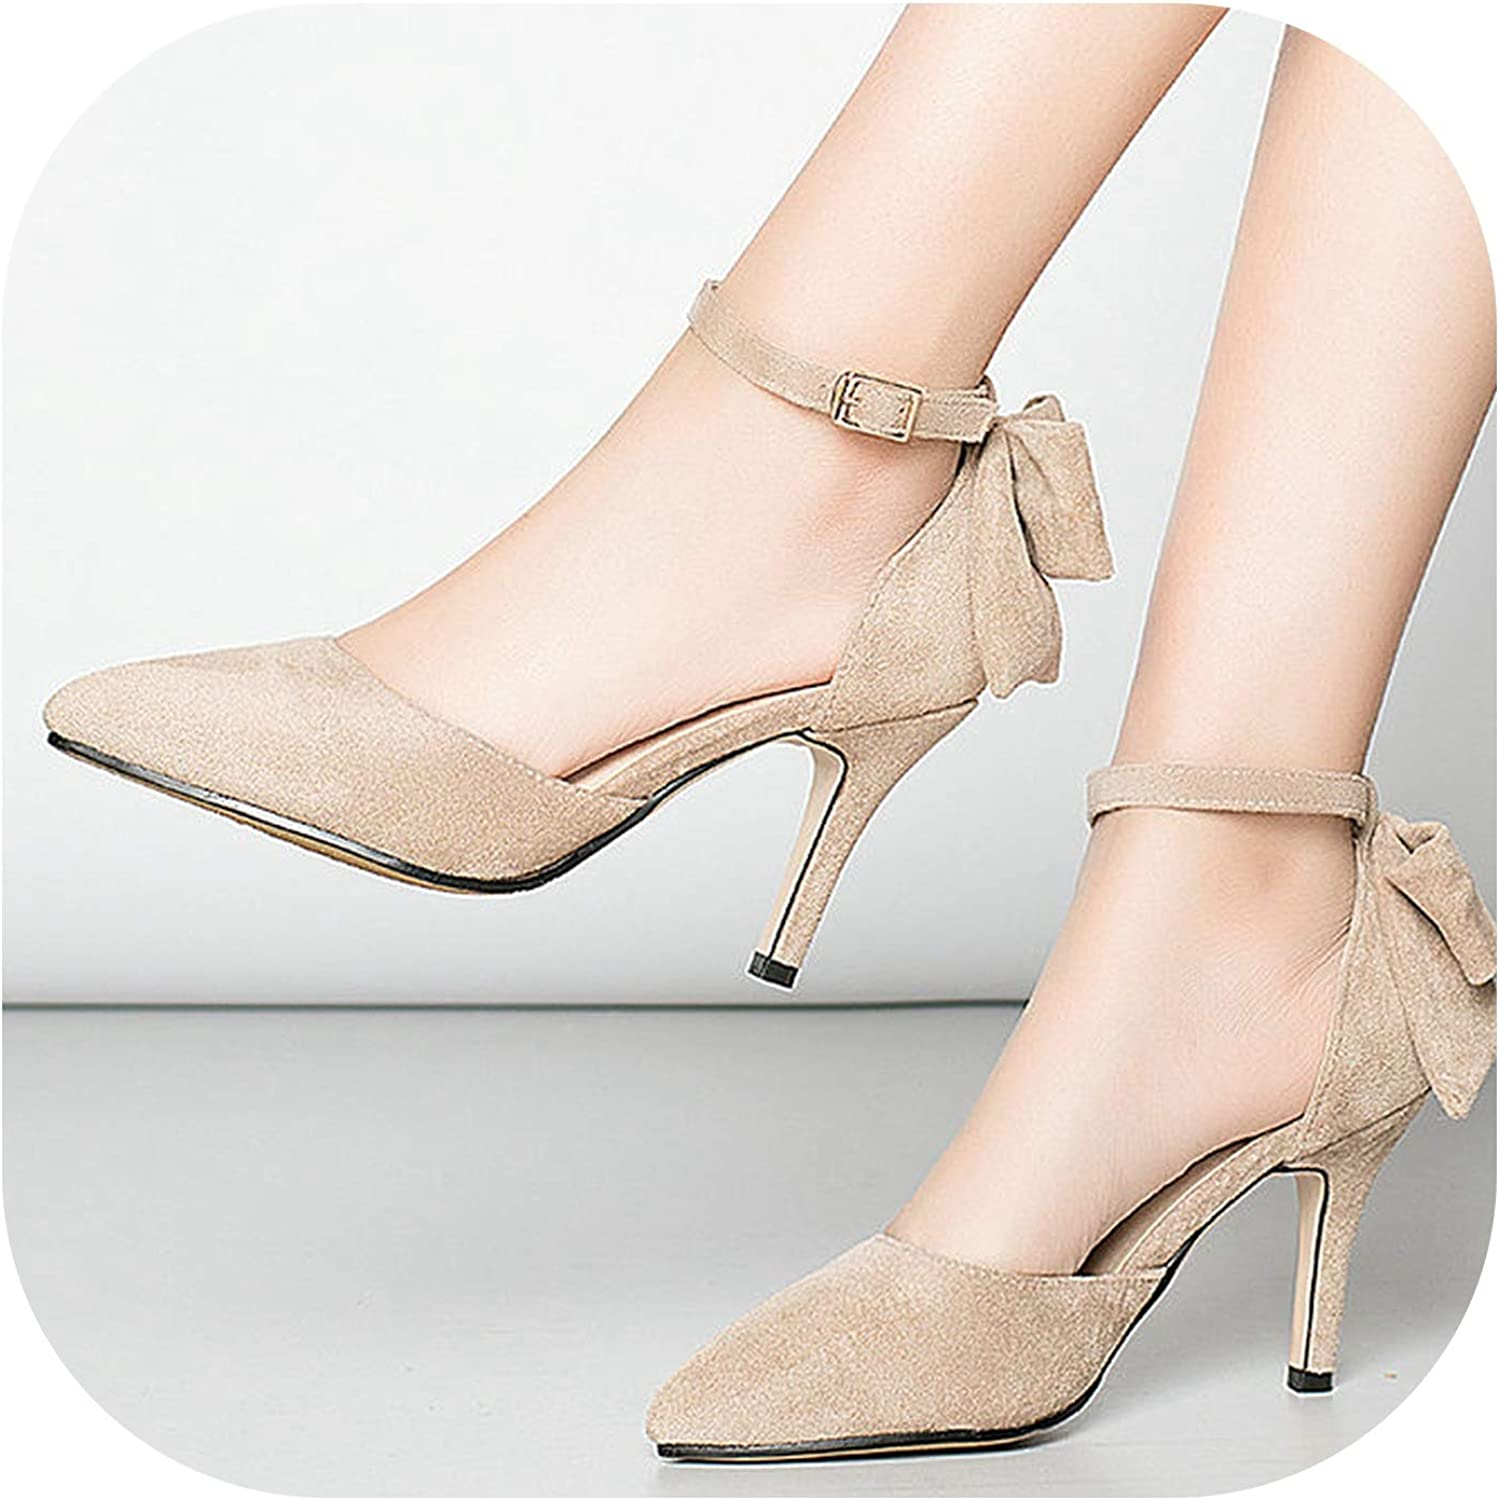 2019 Summer High Heels Women Flock Bow Knot Pumps Thin High Heels Sandals Pointed Toe Party shoes Female